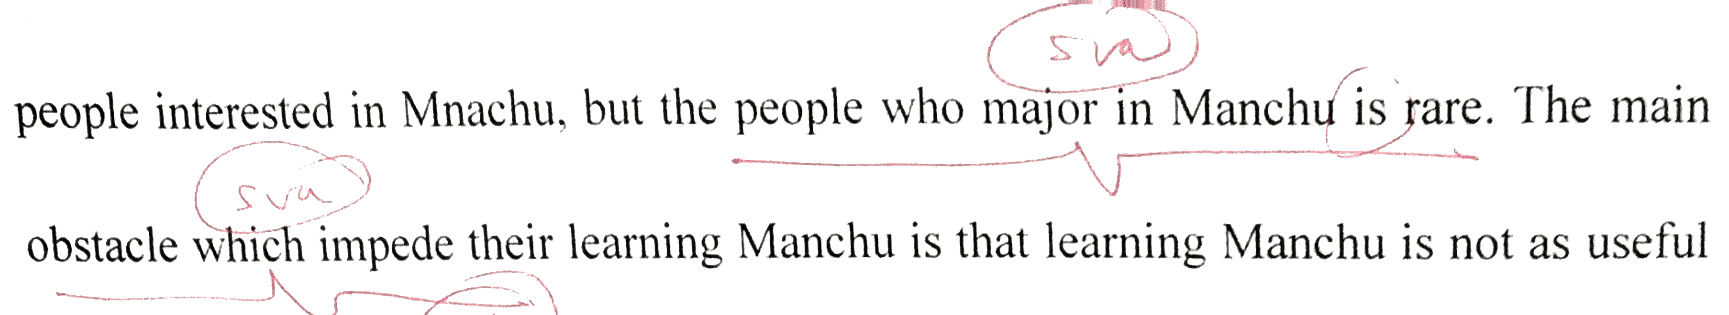 people who major in Manchu  are  rare . . . the main obstacle that impede s